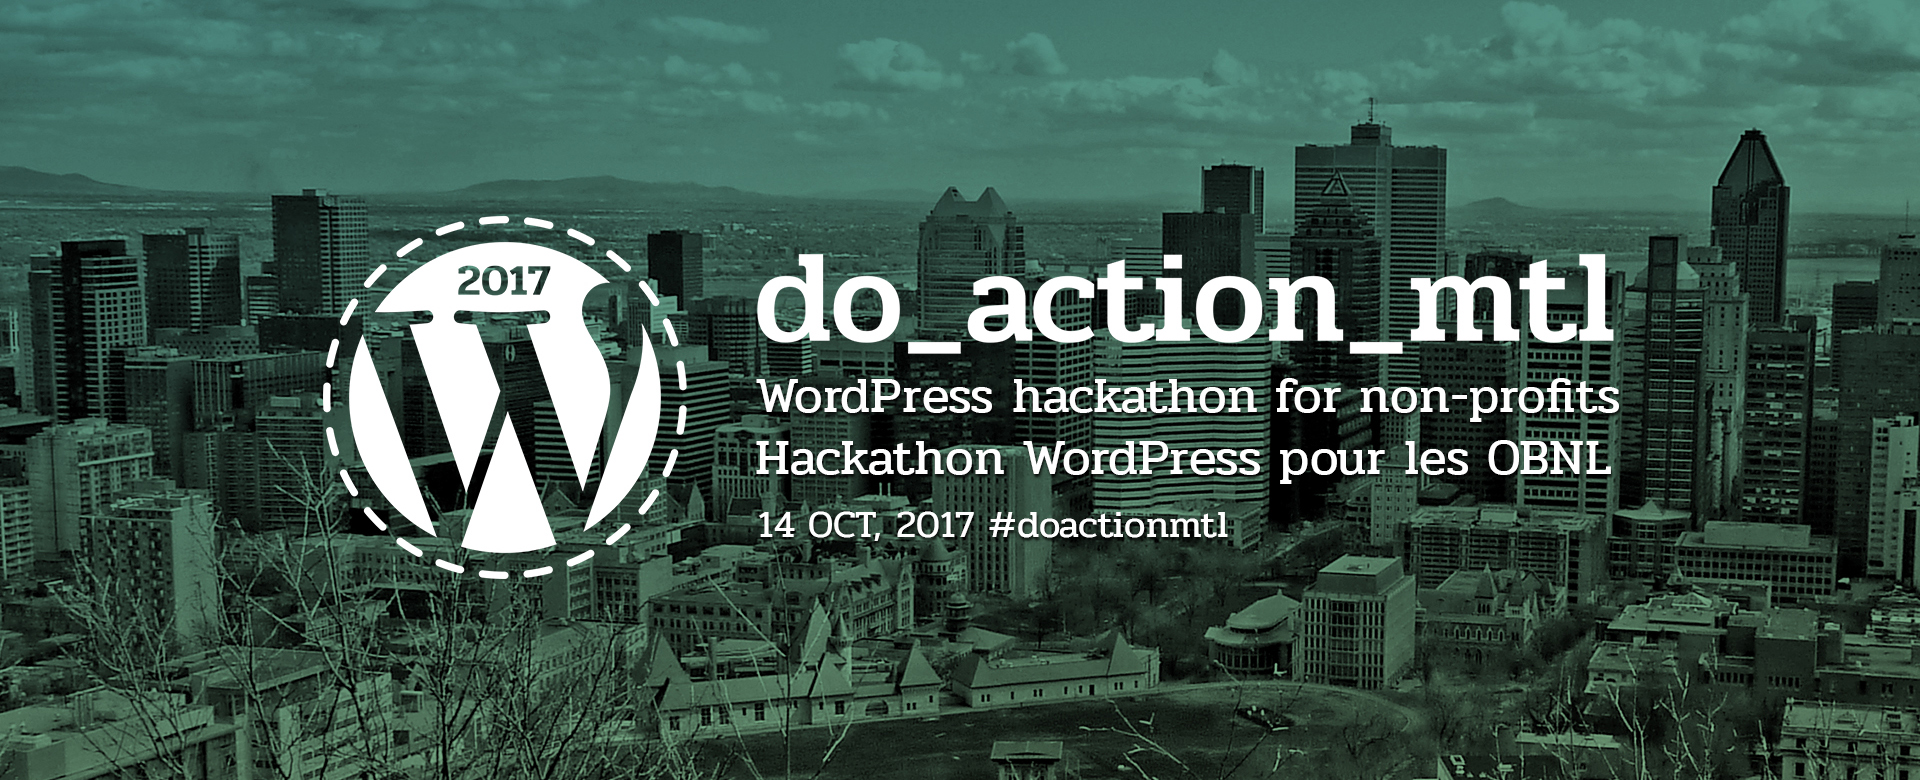 do_action_mtl event banner